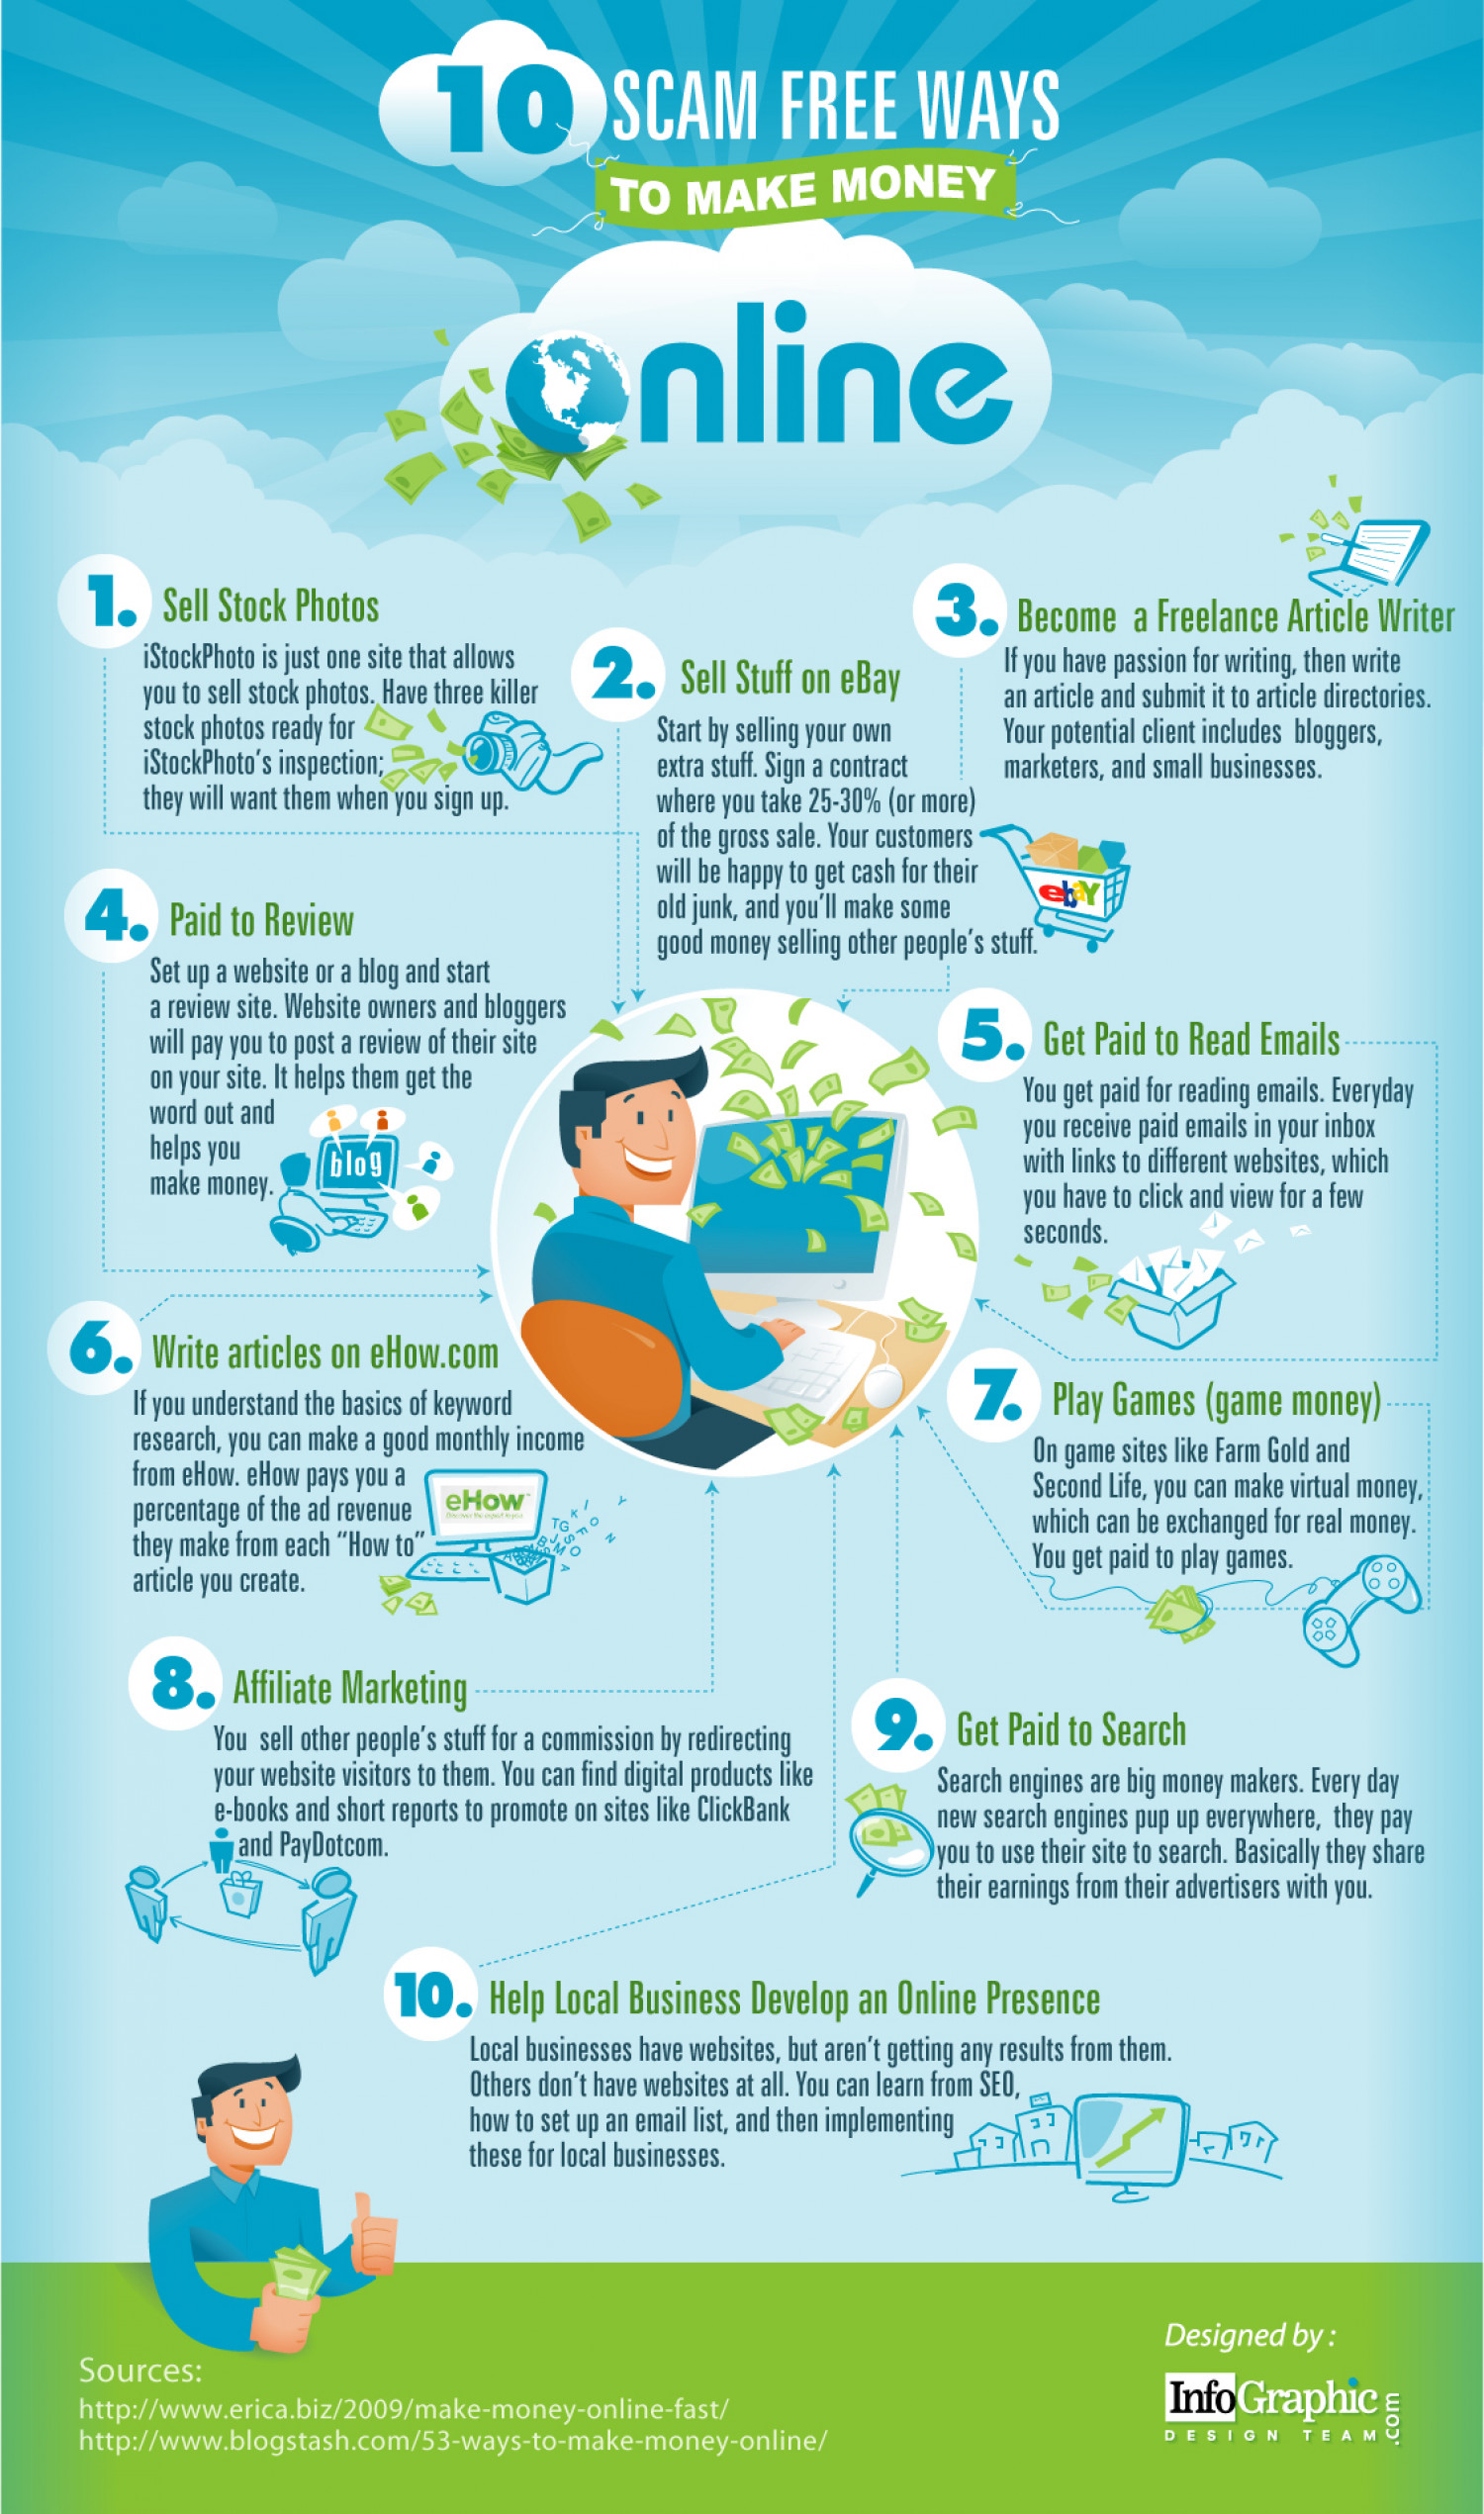 scam ways to make money online ly 10 scam ways to make money online infographic